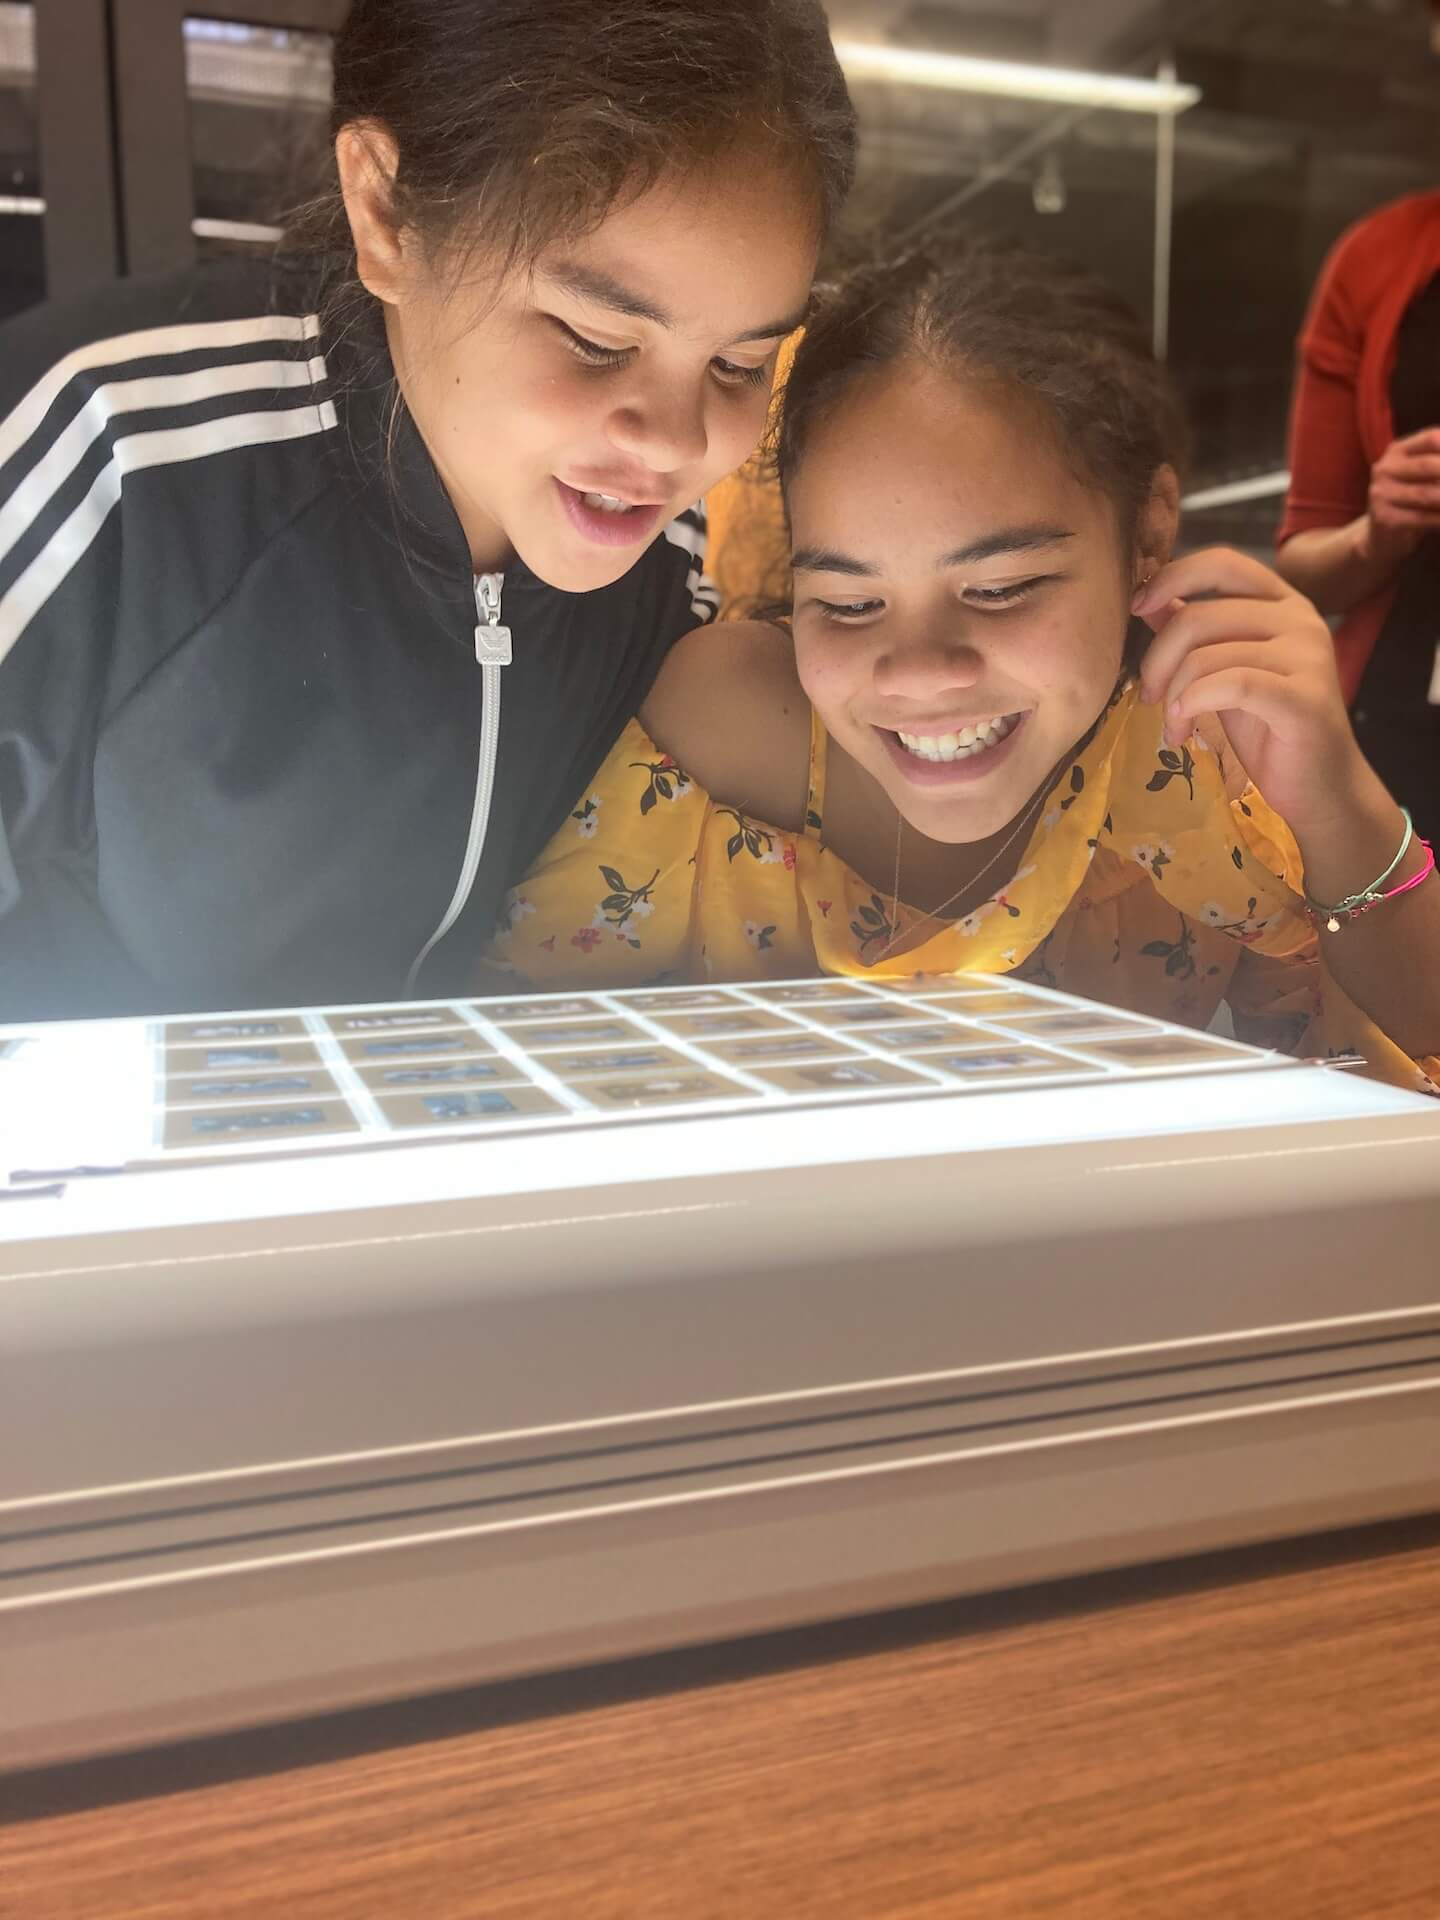 Two girls smiling looking at slides on lighting table.